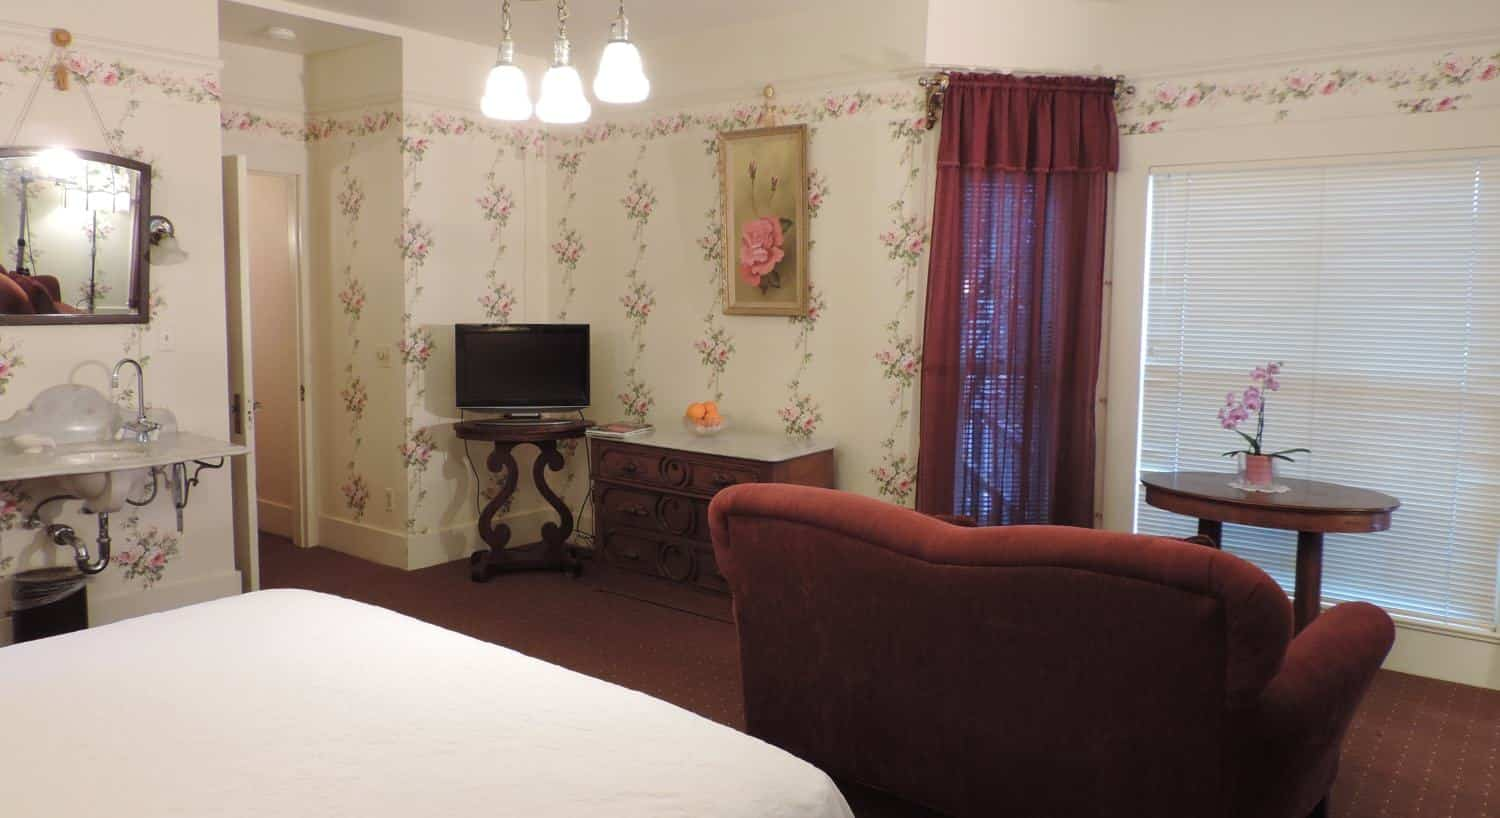 Guest room with ivory floral papered walls, carpeting, guest bed, wash basin, and upholstered chair with table